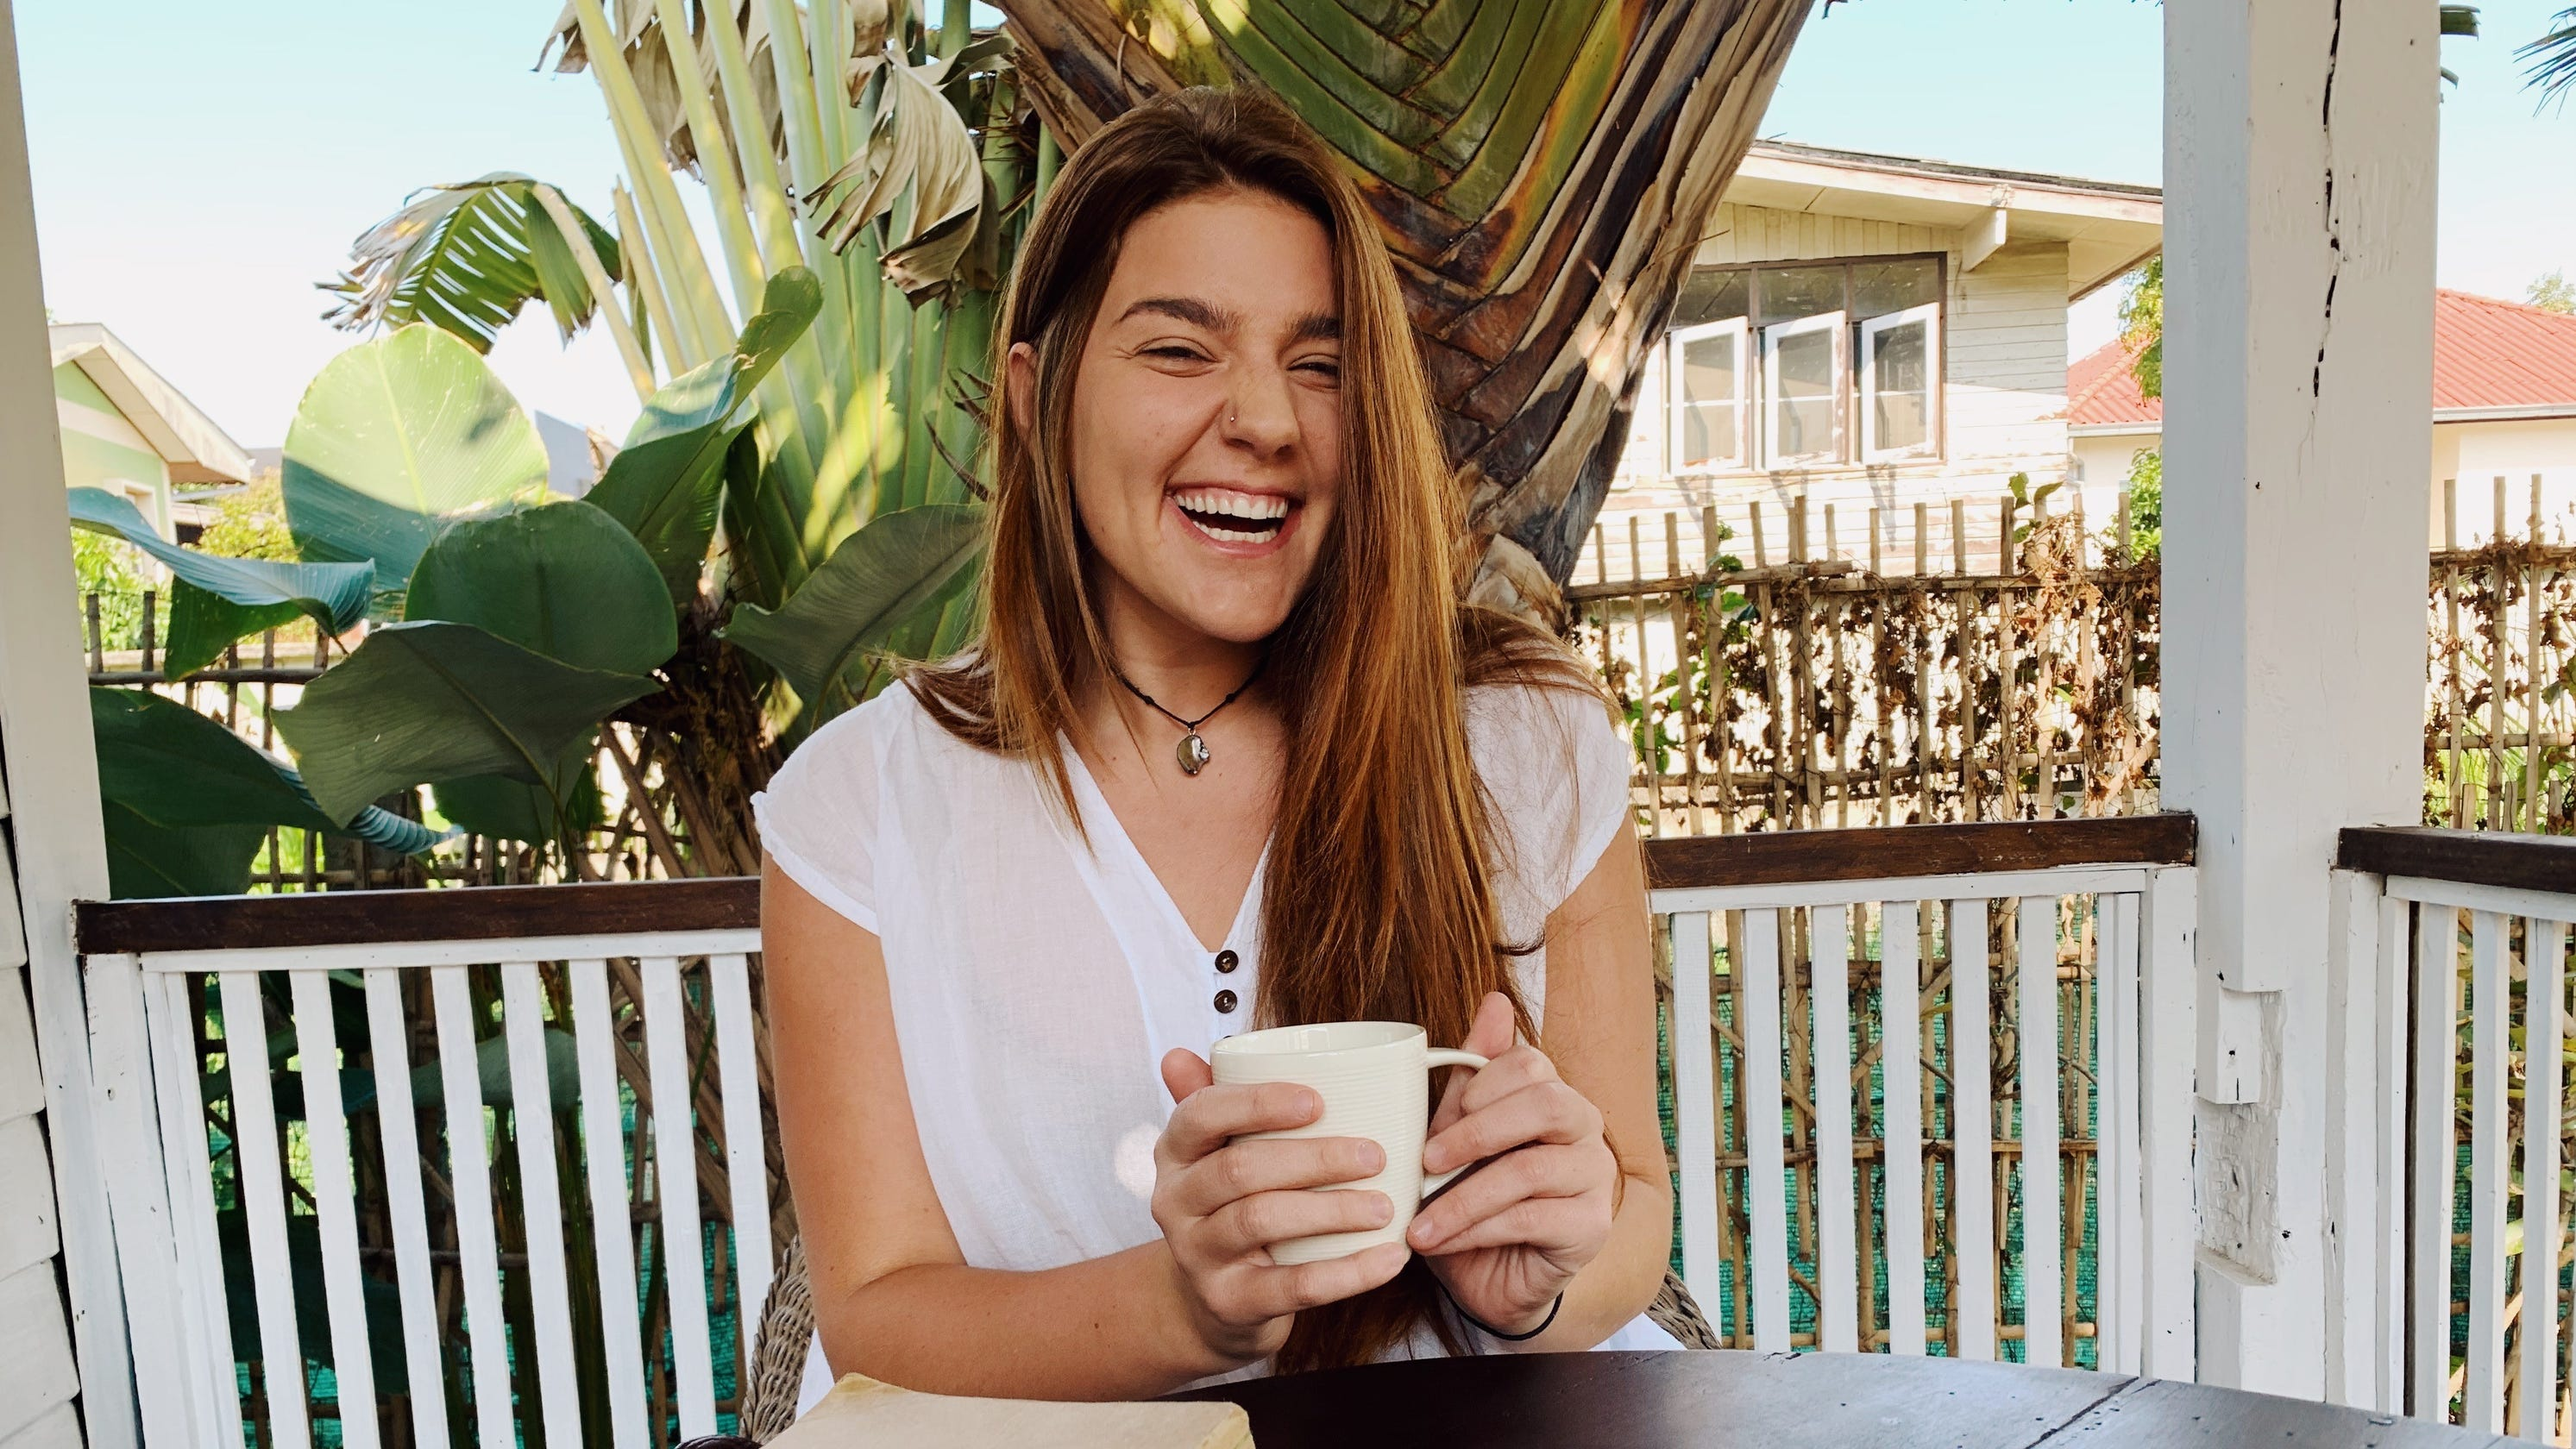 University of Memphis student launches clothing company to empower women worldwide